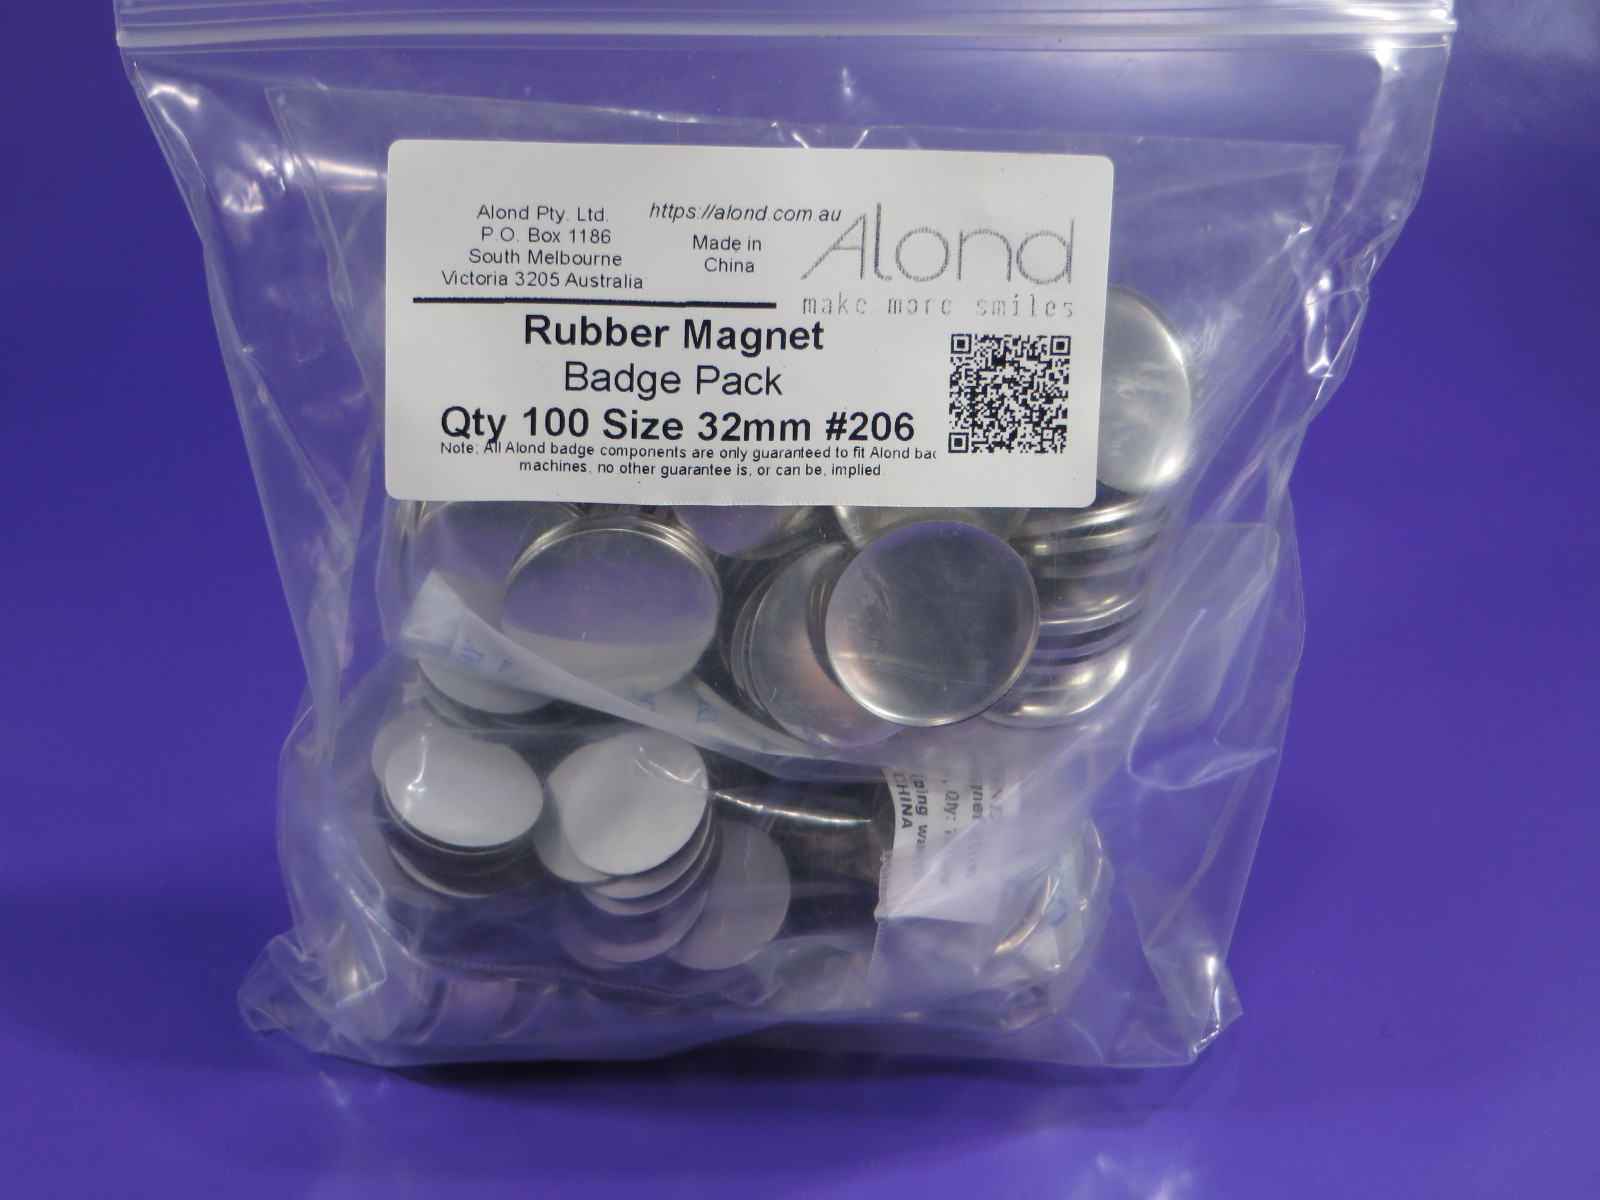 32mm Rubber magnet pack size